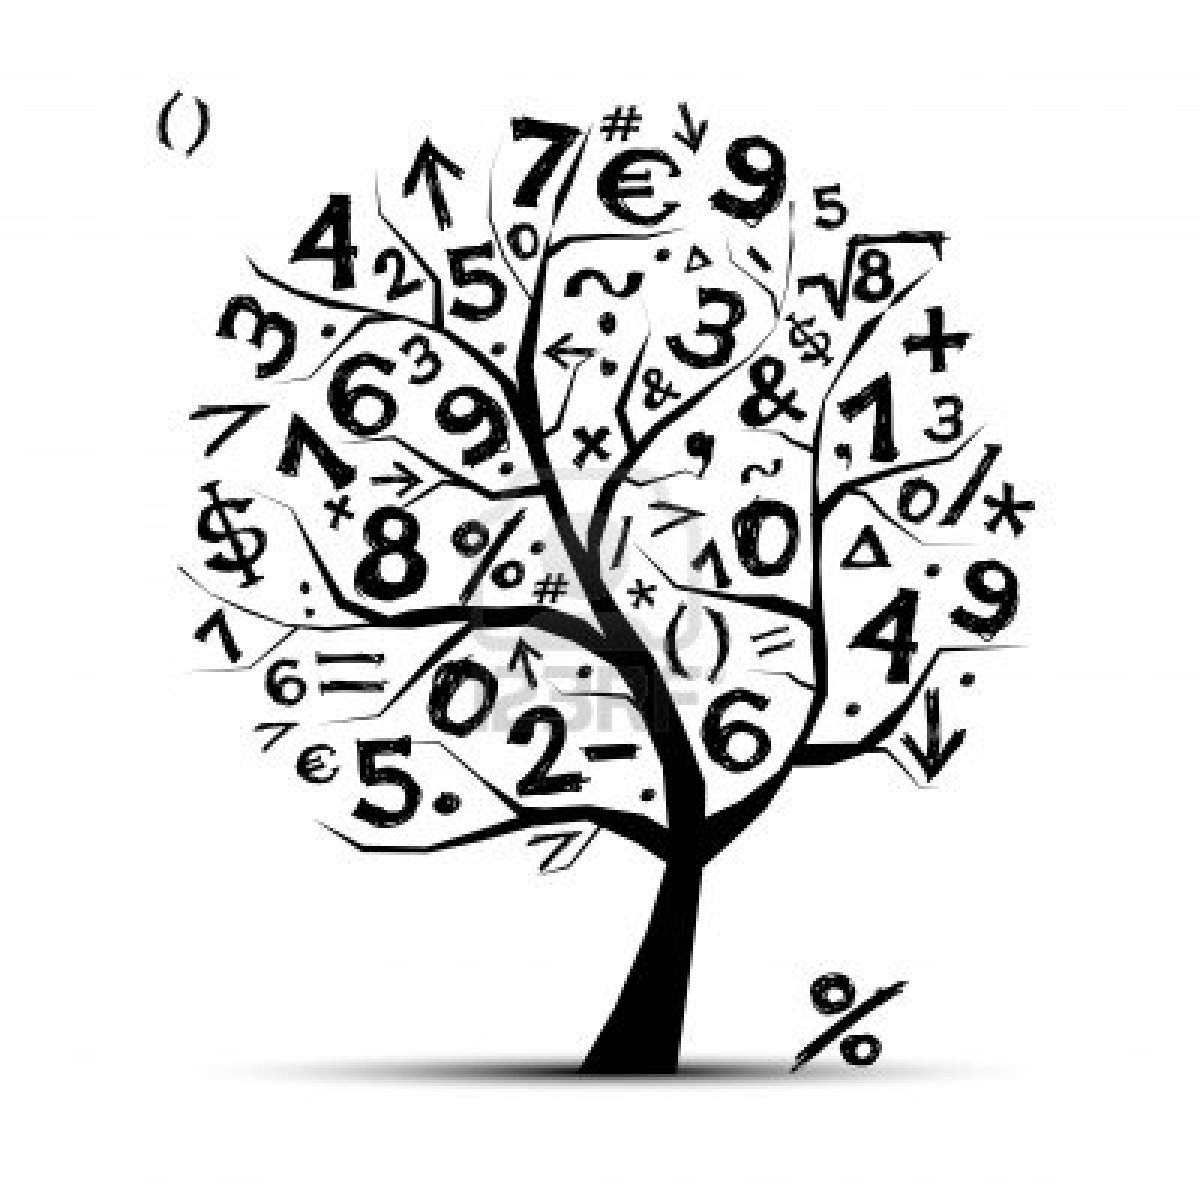 11264060-art-tree-with-math-symbols-for-your-design